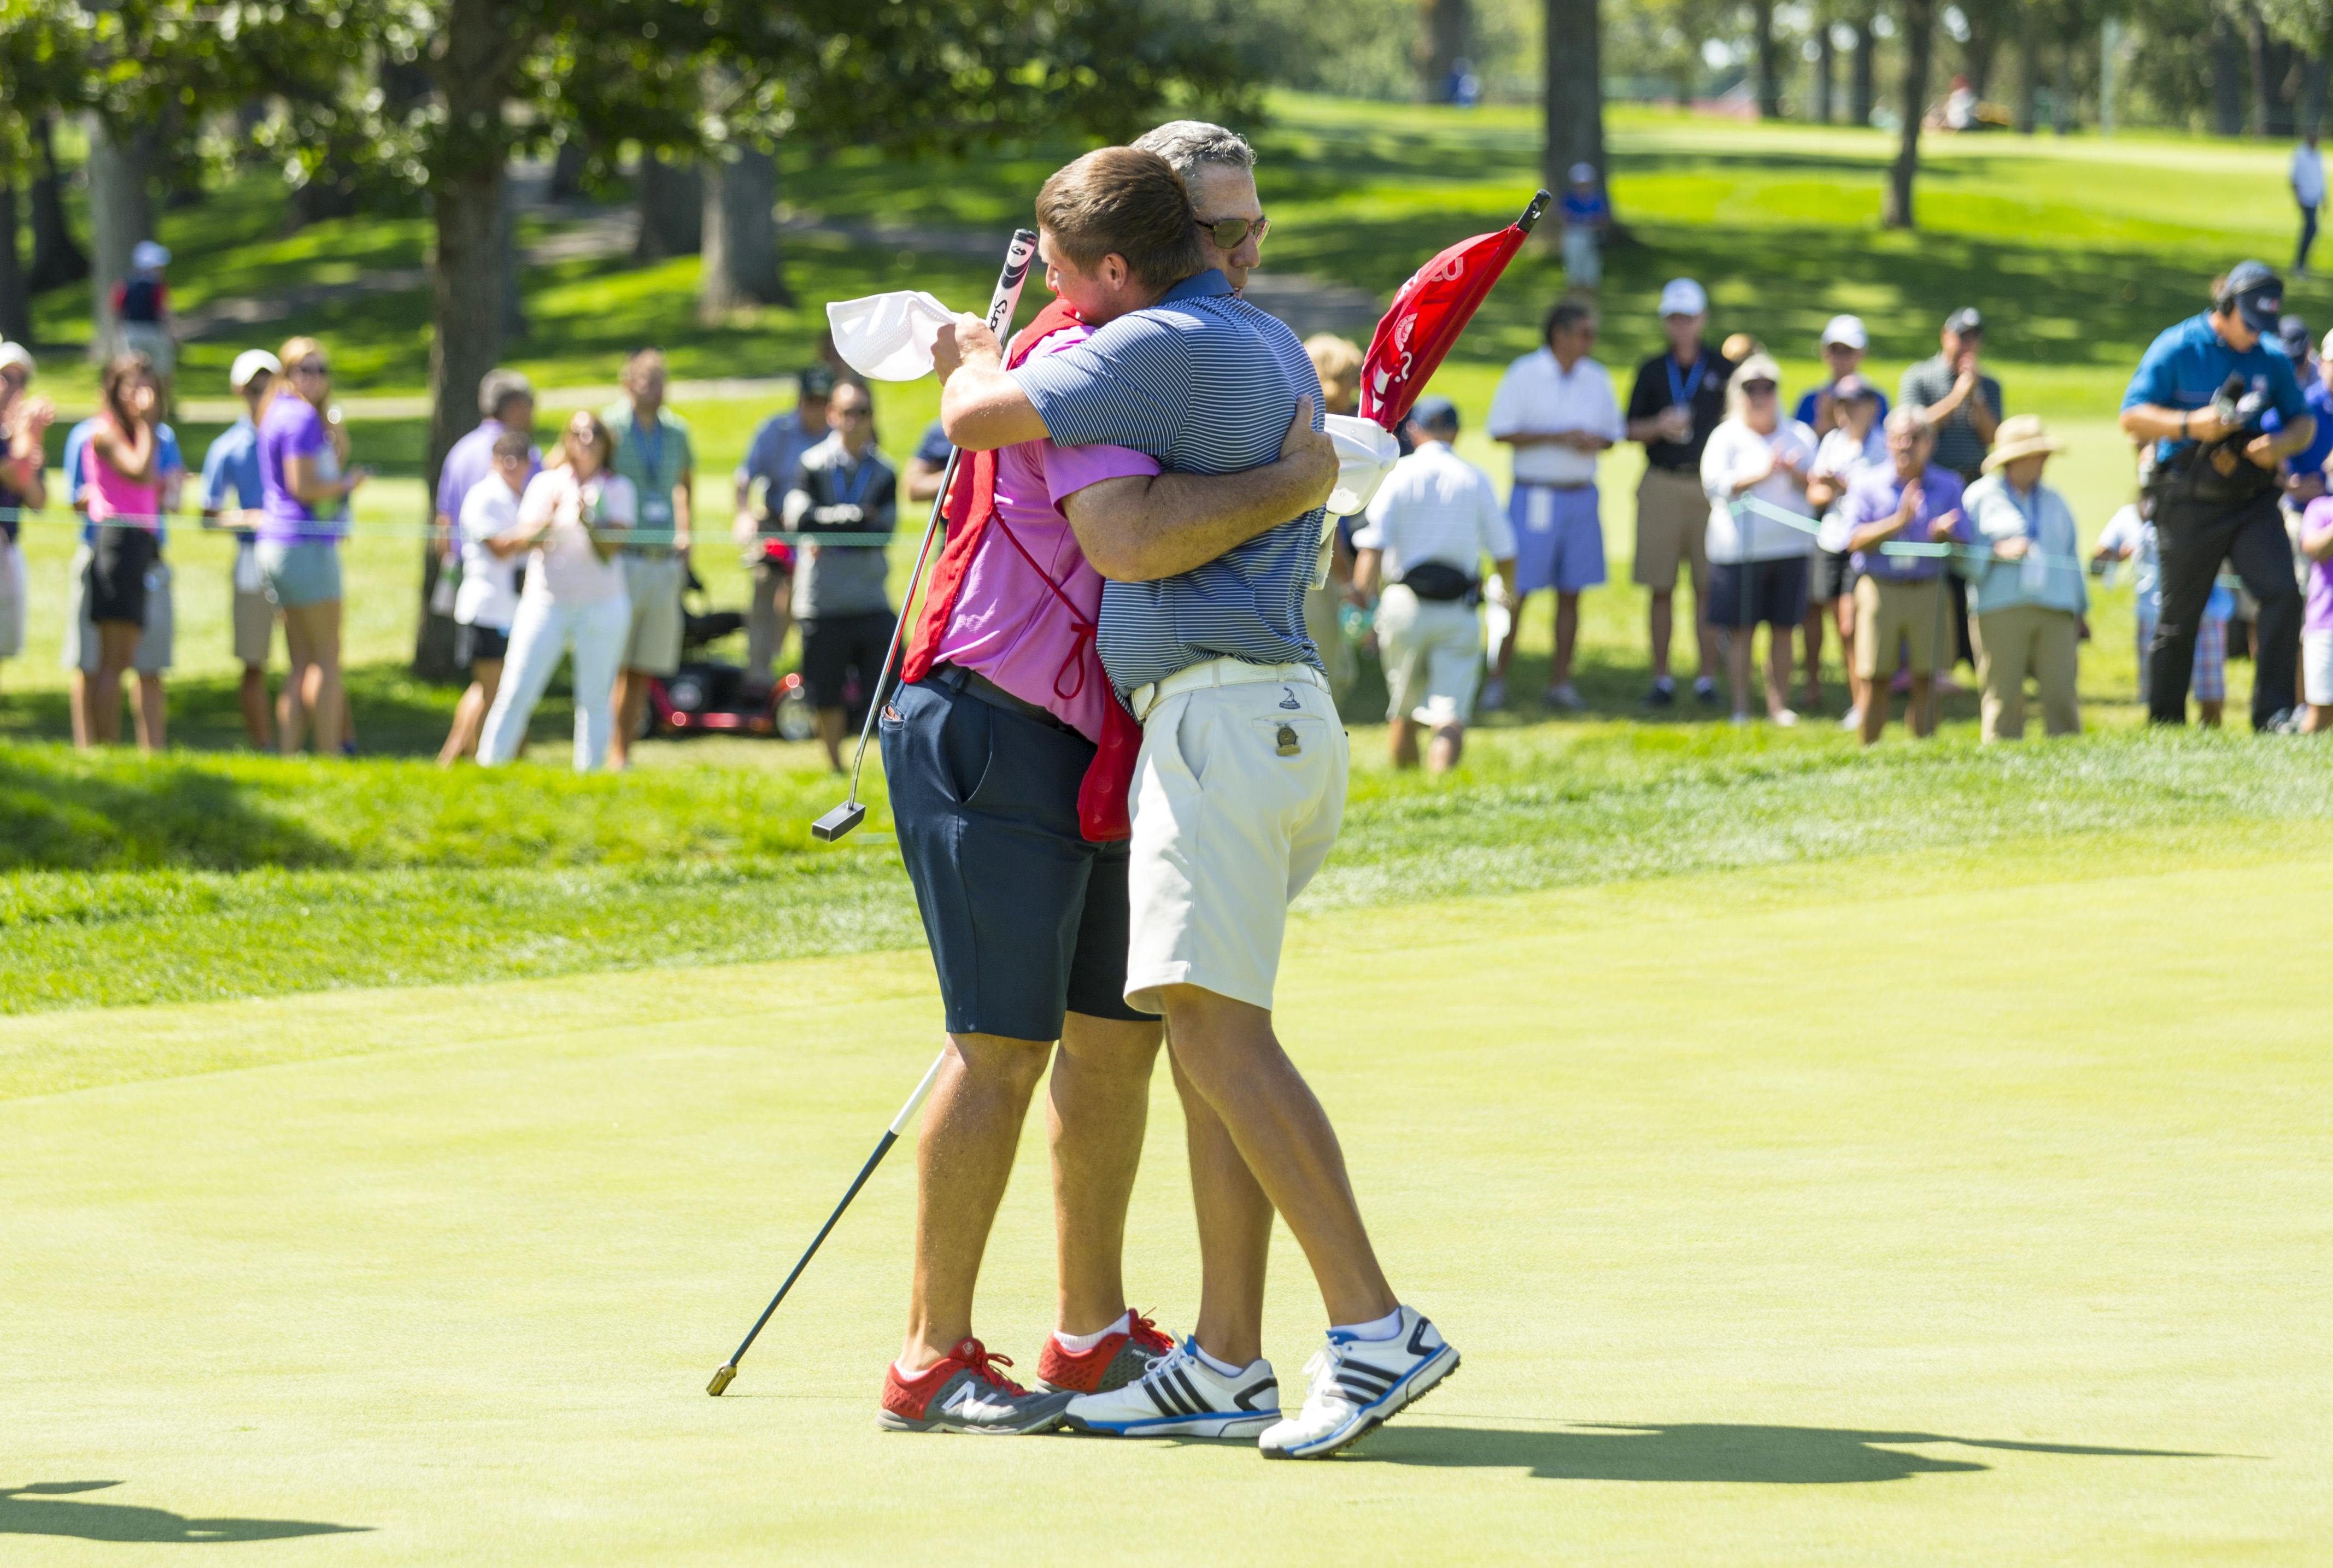 In this image provided by the United States Golf Association, Bryson DeChambeau, right, shares a hug with his caddie Mike Schy after winning his match 4 and 3 against Sean Crocker in the semifinal round of match play at the U.S. Amateur golf